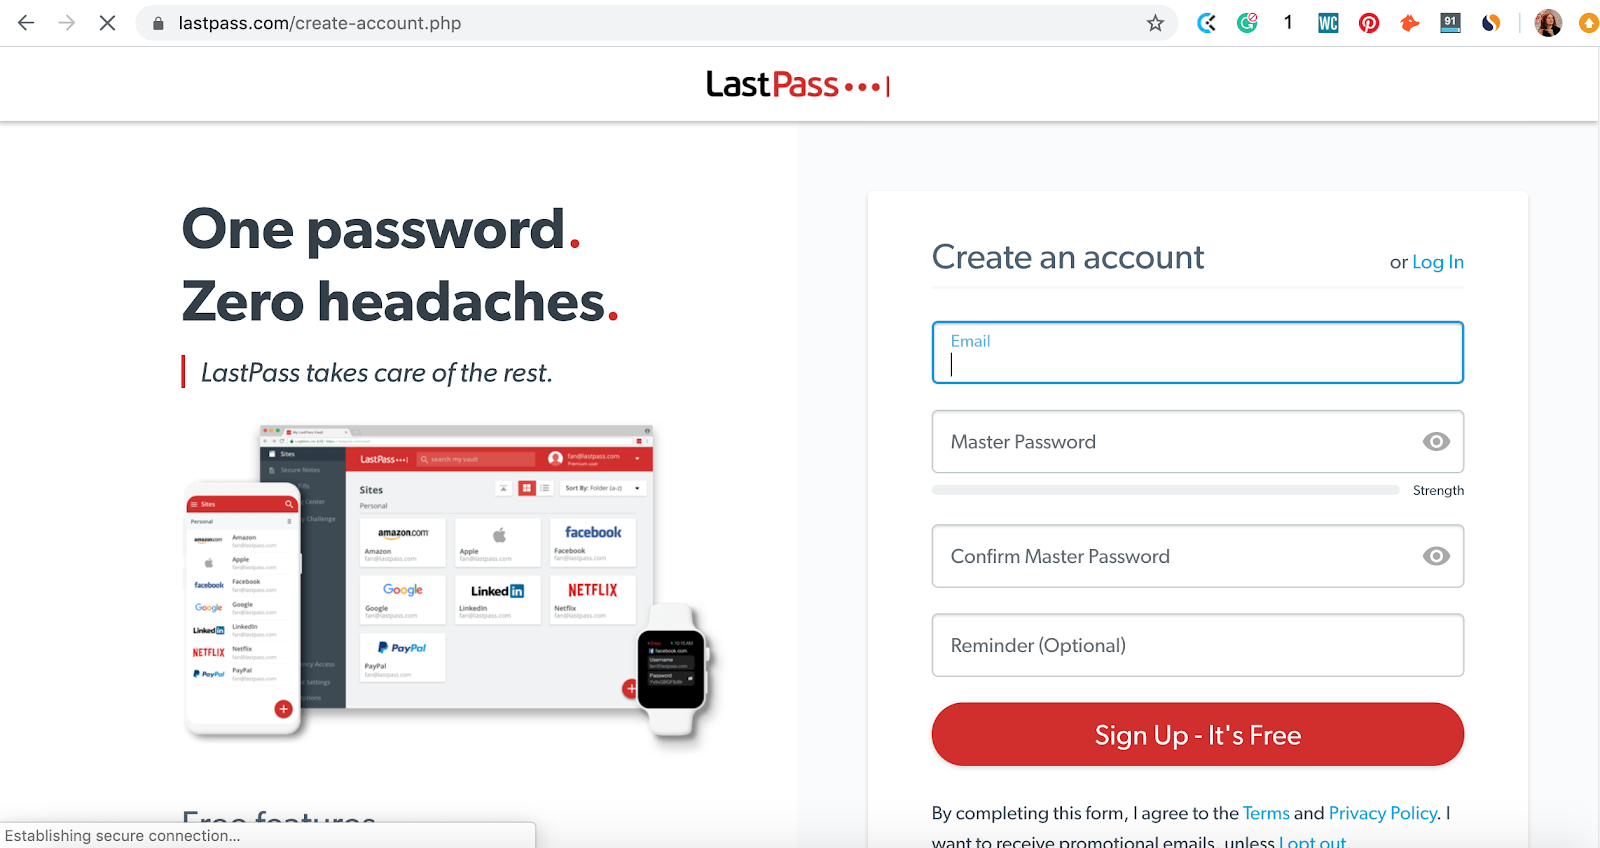 How to create new account with LastPass password manager app. Part of the article by Hana Clode Marketing 'LastPass Password Manager - Apps to Make Your Life Easier'.